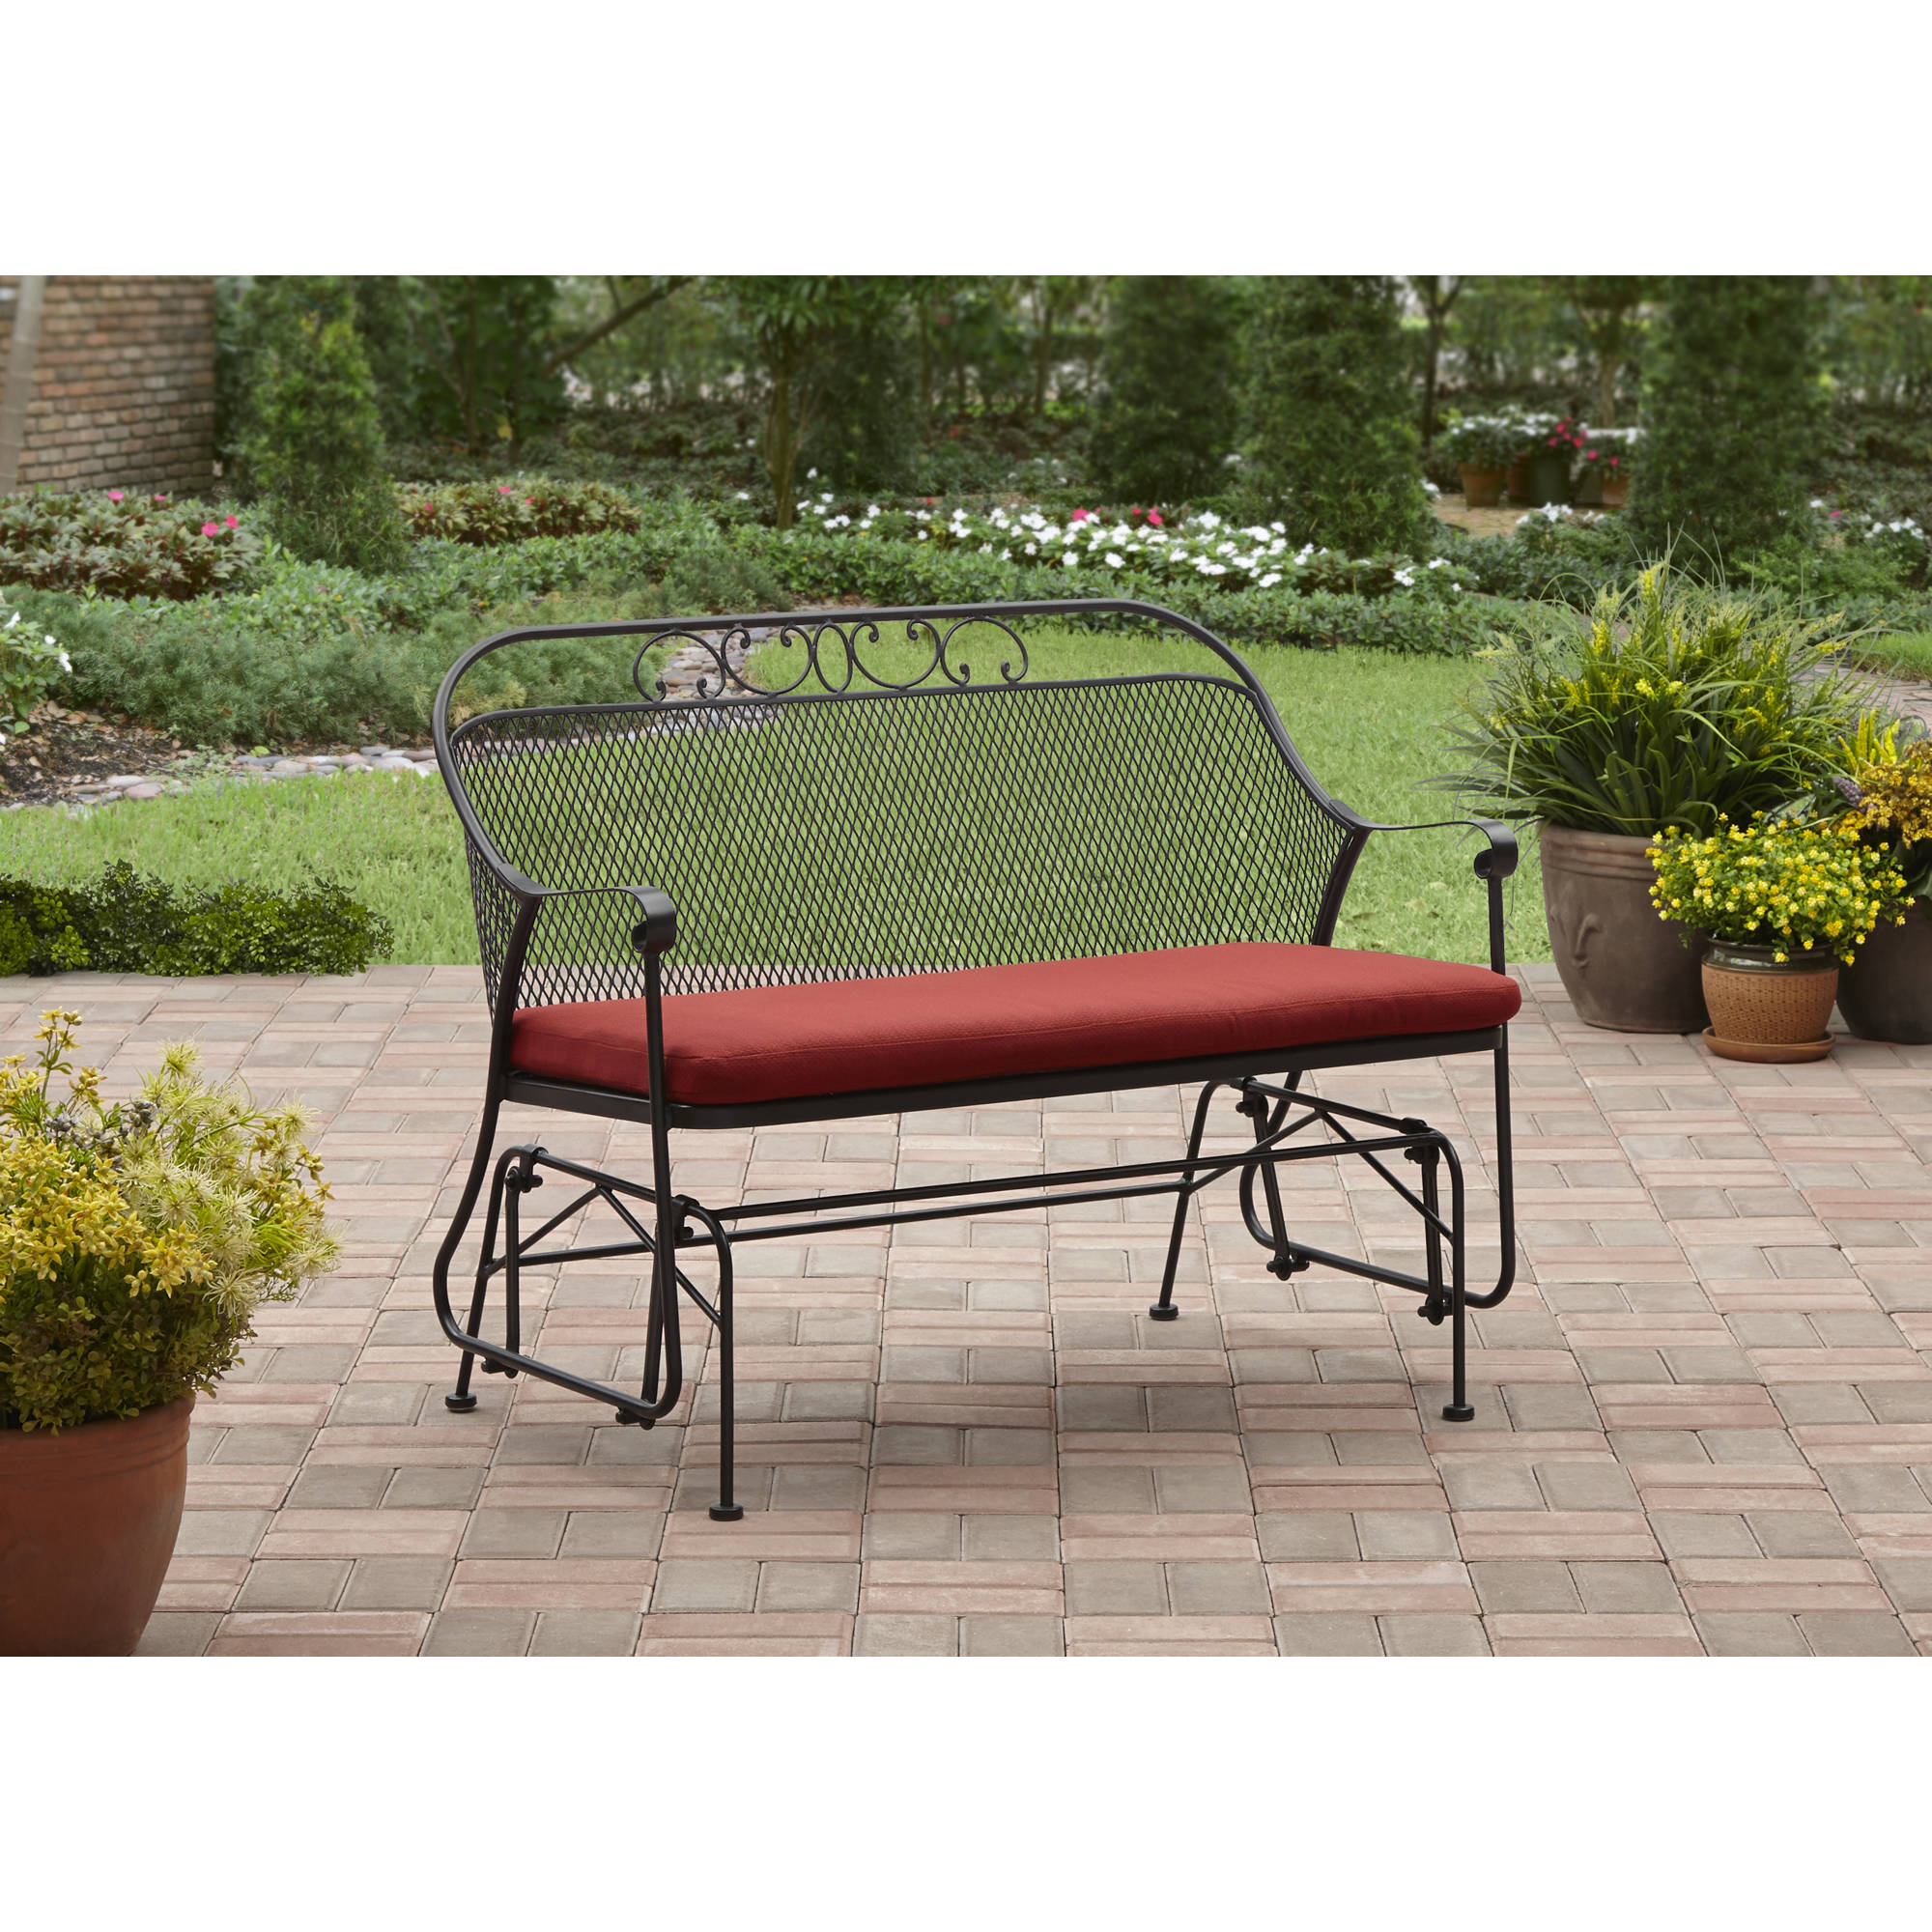 la patio glider holder canada flip bench larger swings s cup lowe benches cypress view